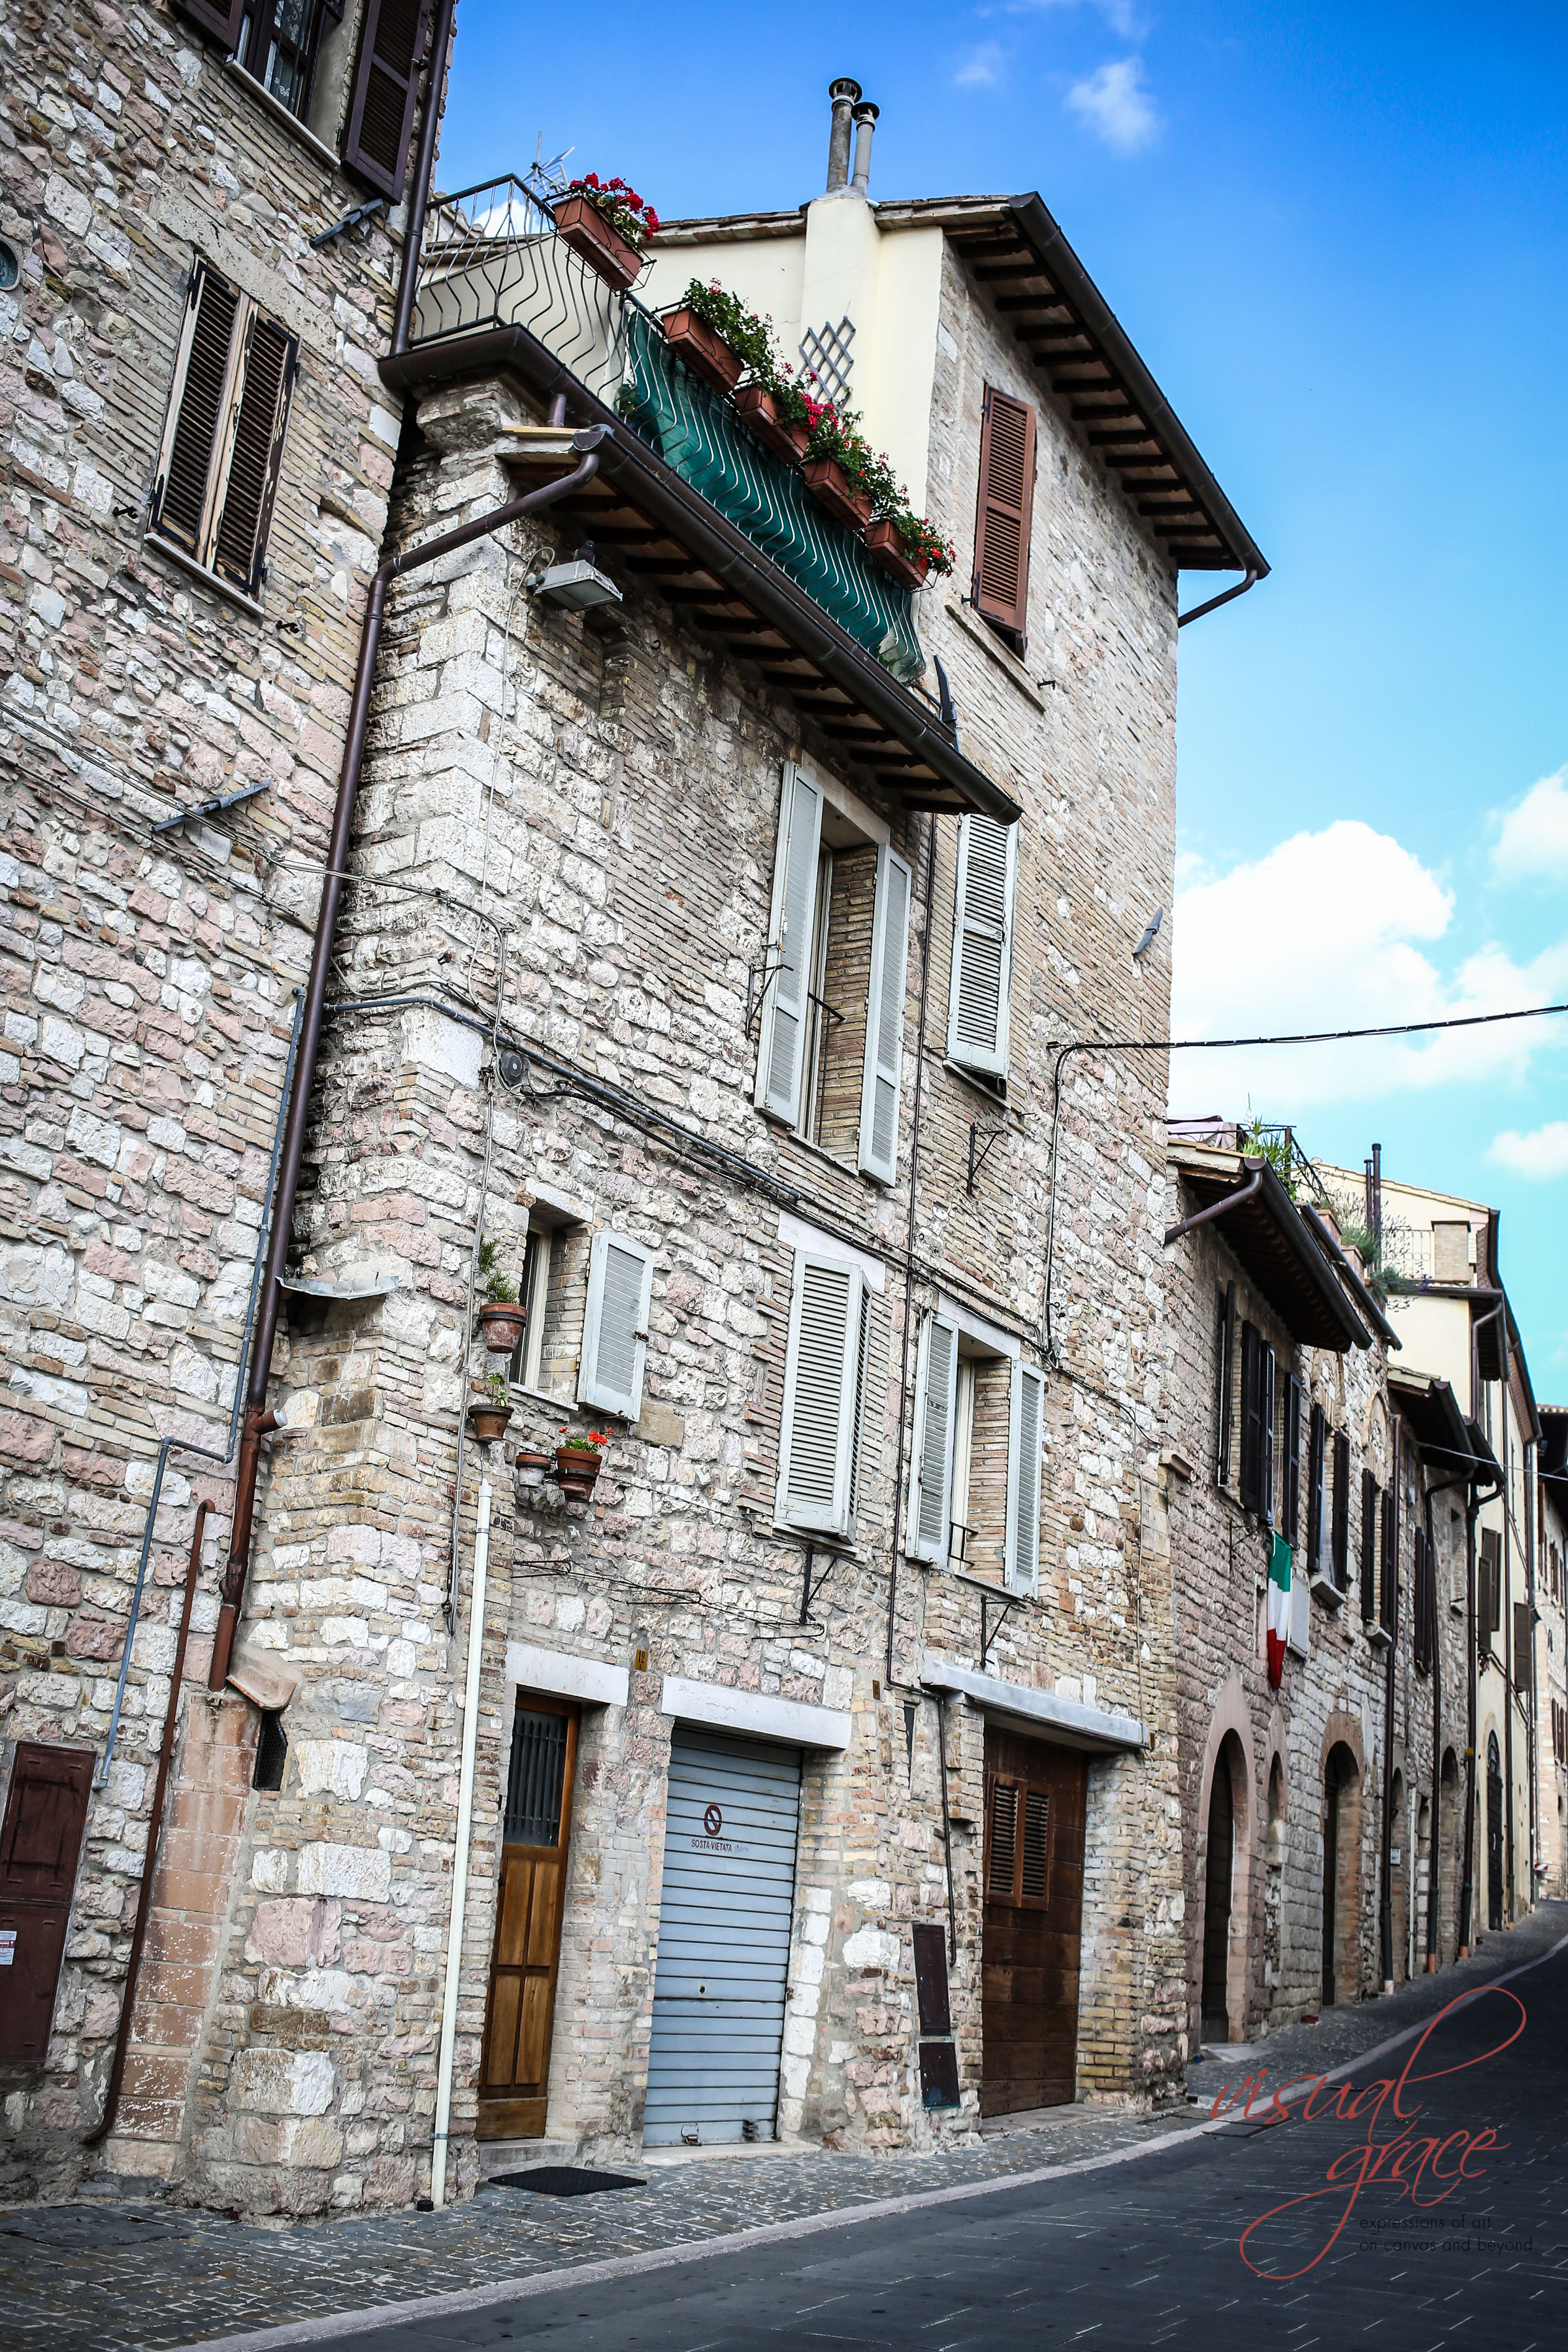 Italy Adventures2016-56a